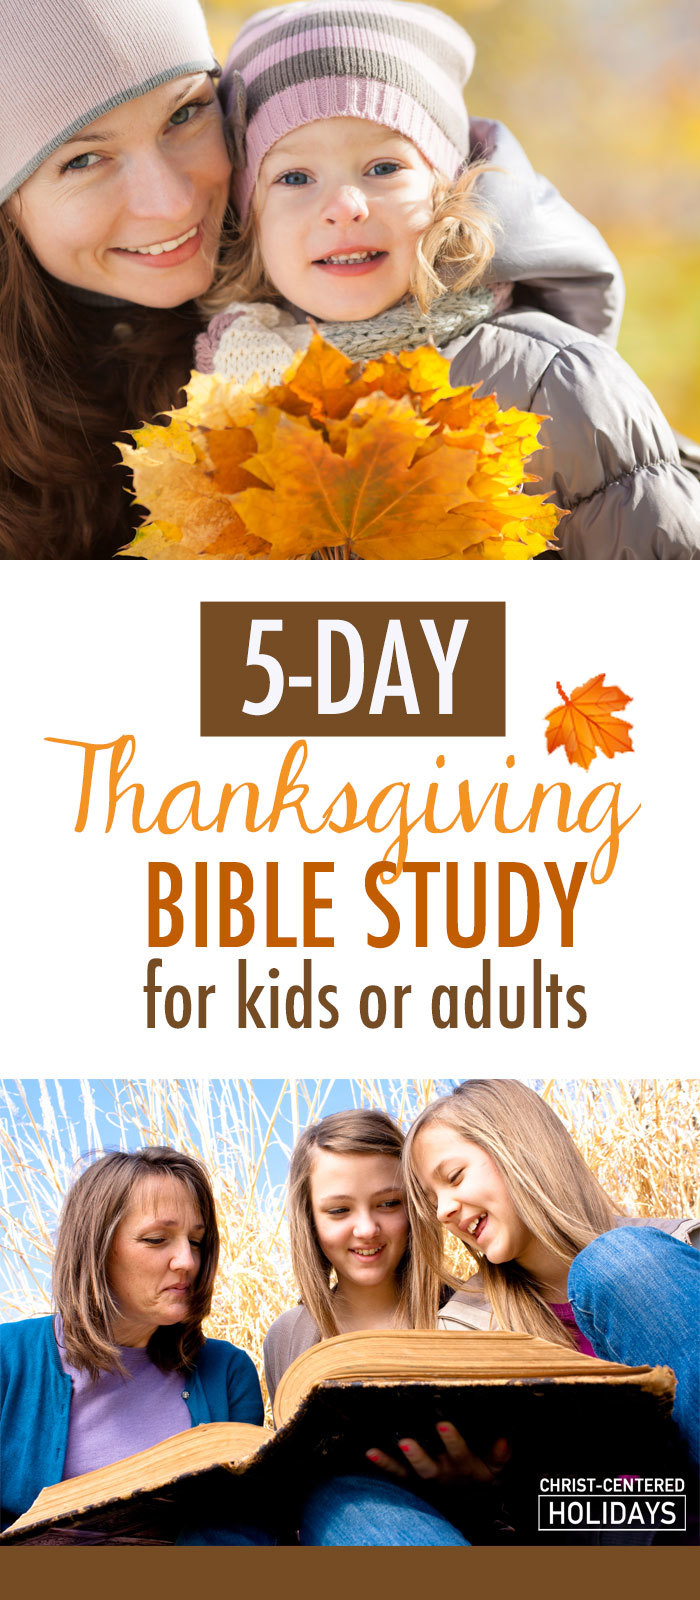 thanksgiving bible lessons kids | thanksgiving bible lessons | thanksgiving bible study kids | thanksgiving Bible lessons adults | thanksgiving bible lesson adults | thanksgiving bible lesson | thanksgiving bible study youth | thanksgiving bible study | free bible study lessons | free bible study lessons online | thanksgiving bible lesson | free thanksgiving bible study | kids thanksgiving bible lessons | thanksgiving bible verses